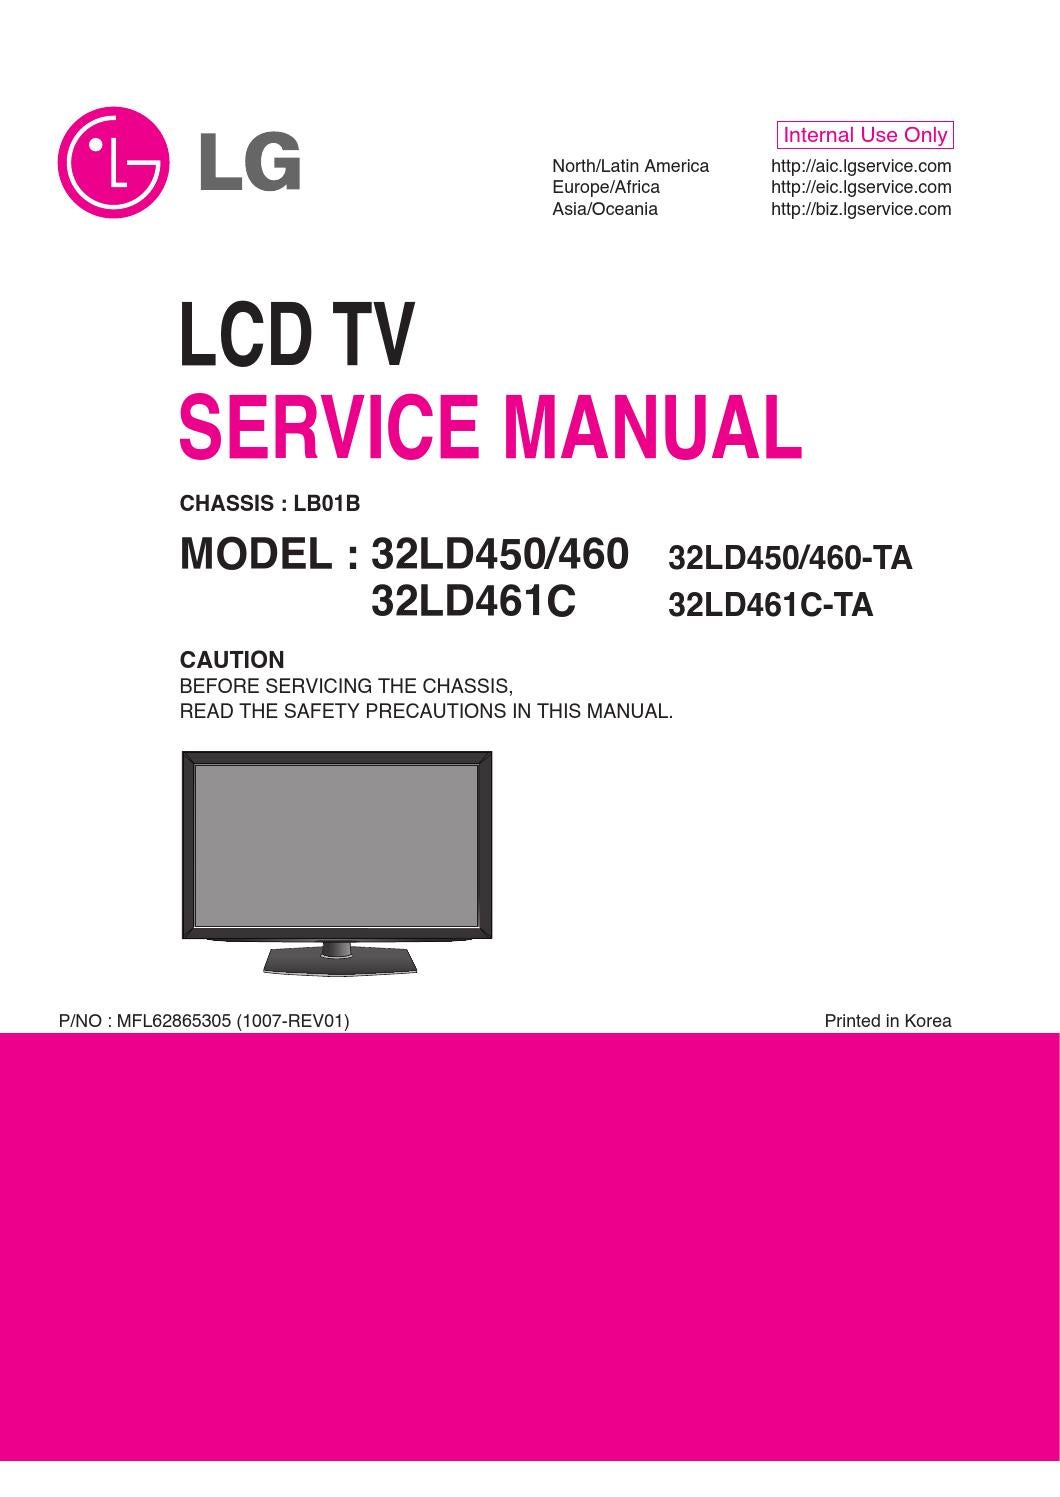 manual de servi o tv lg 32ld450 32ld460 e 32ld461c. Black Bedroom Furniture Sets. Home Design Ideas